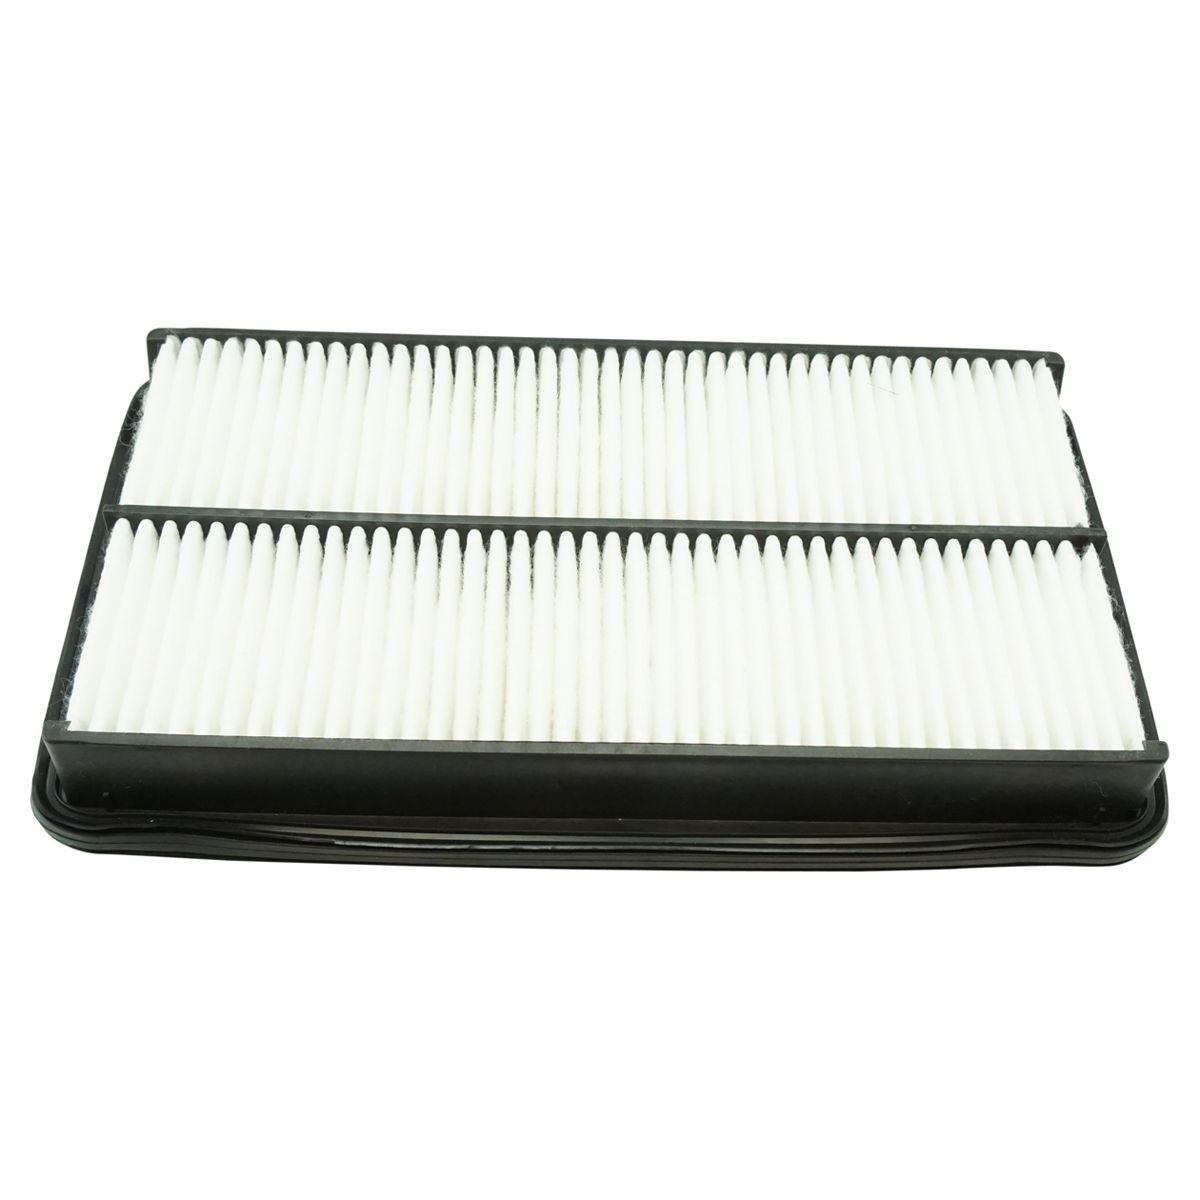 Engine Air Cleaner Filter For Honda Pilot Odyssey Acura